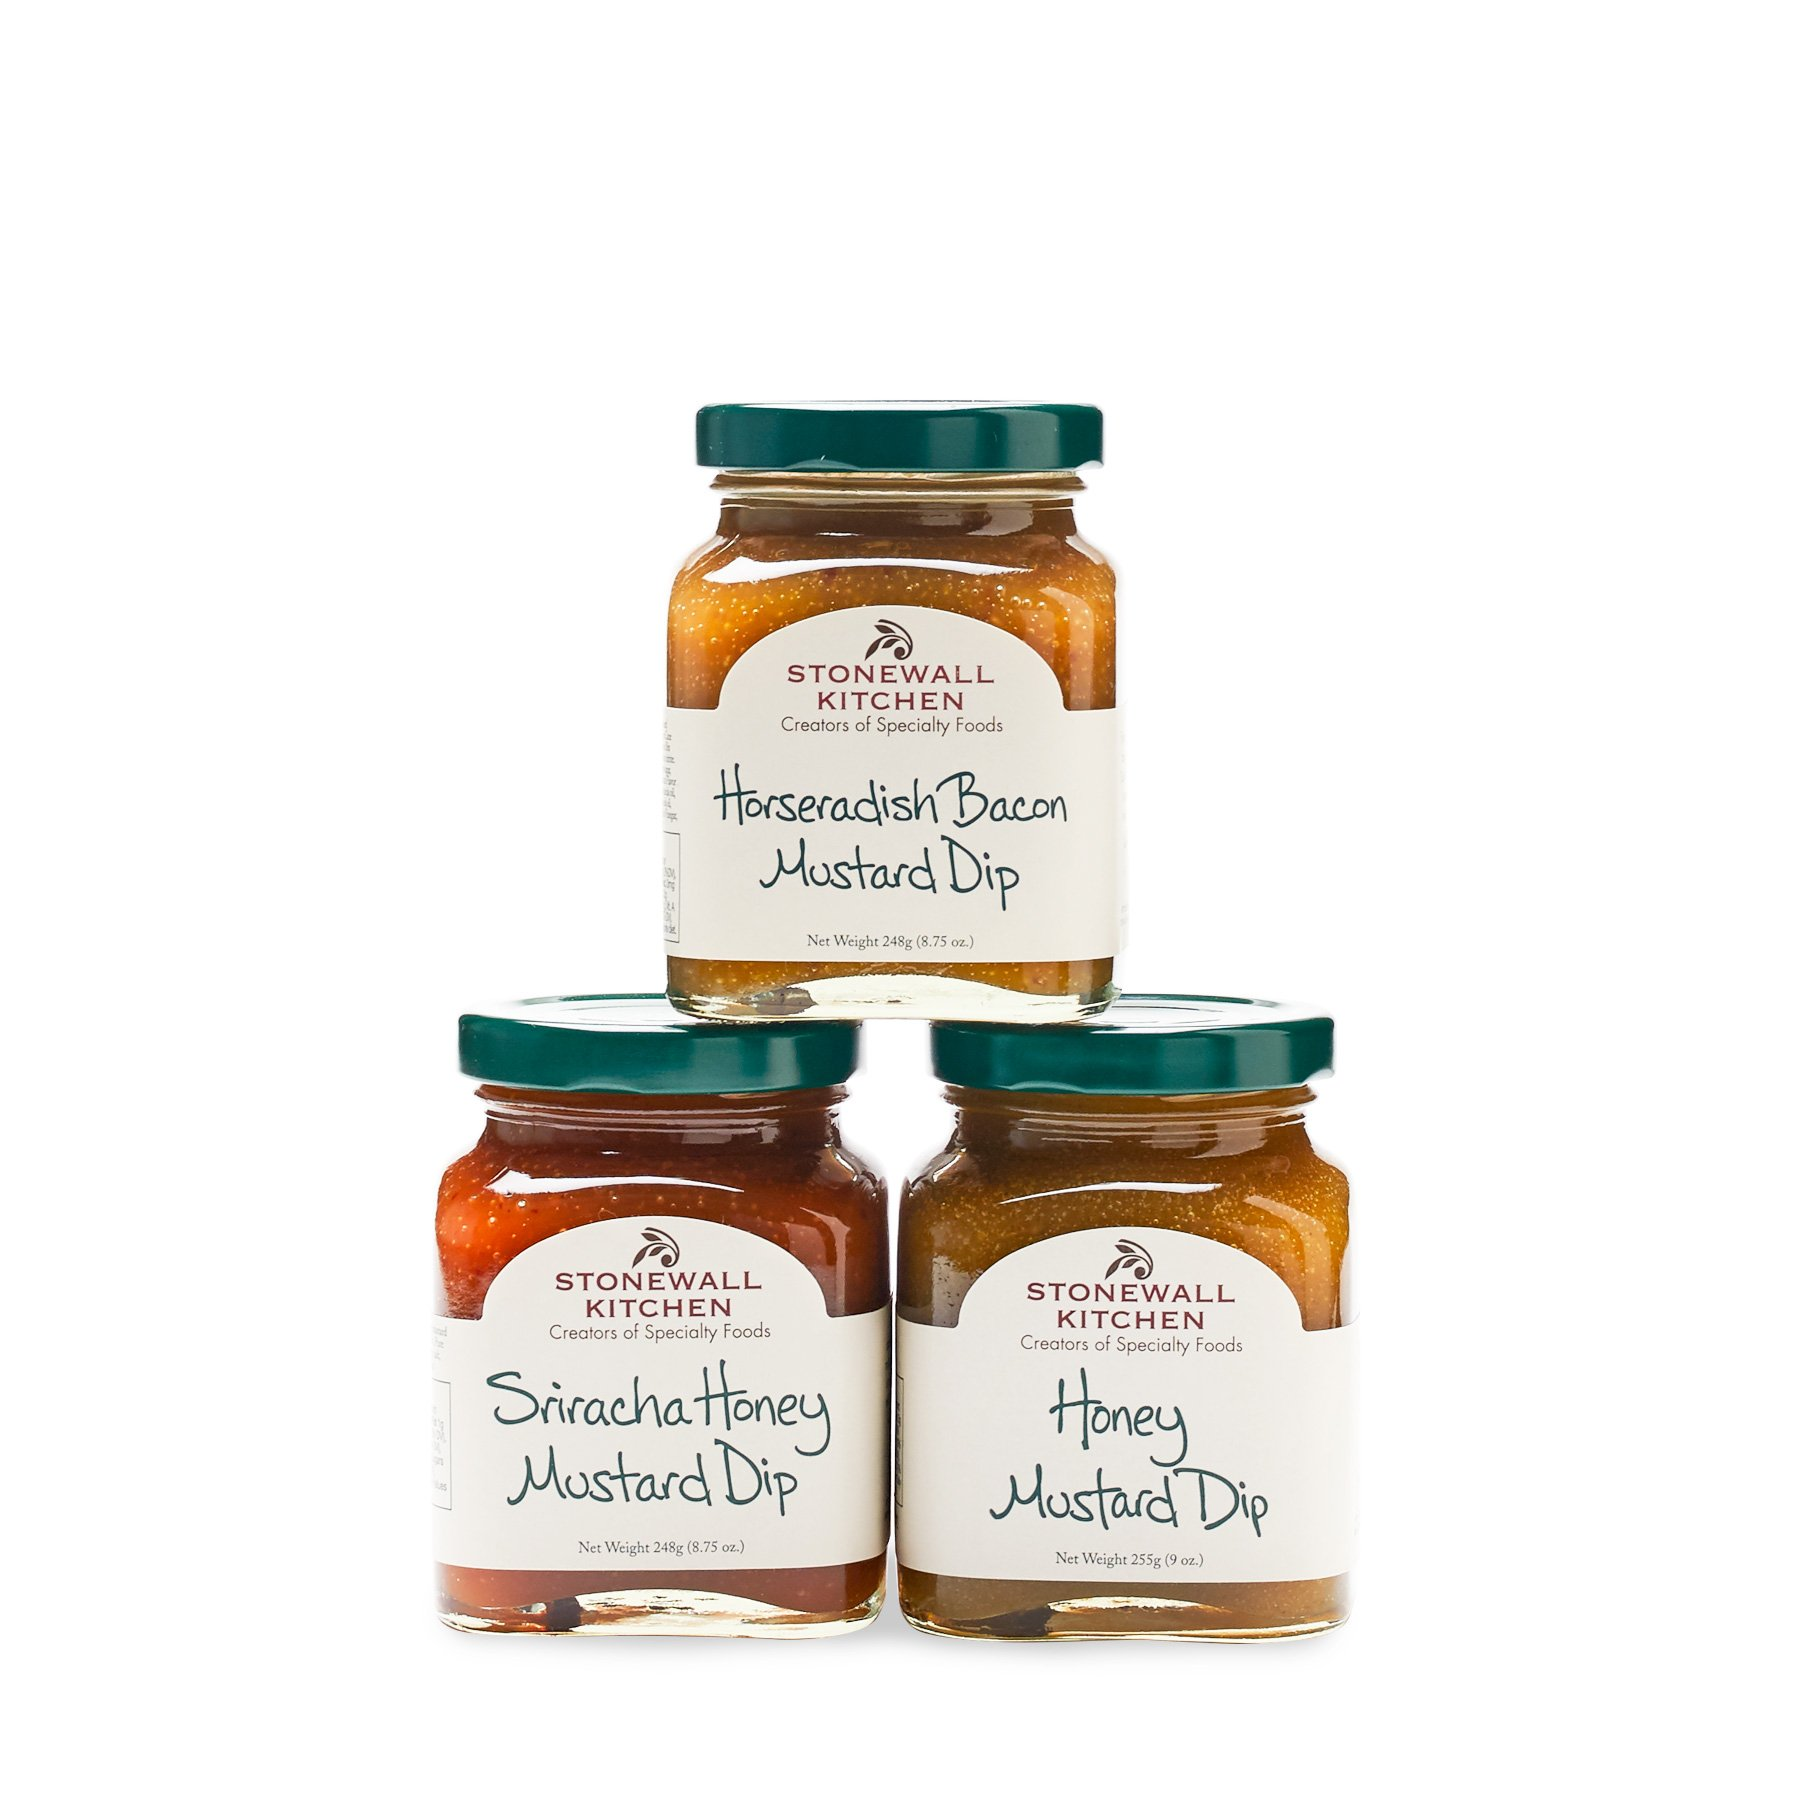 Stonewall Kitchen Our Dipping Mustard Collection (3pc)